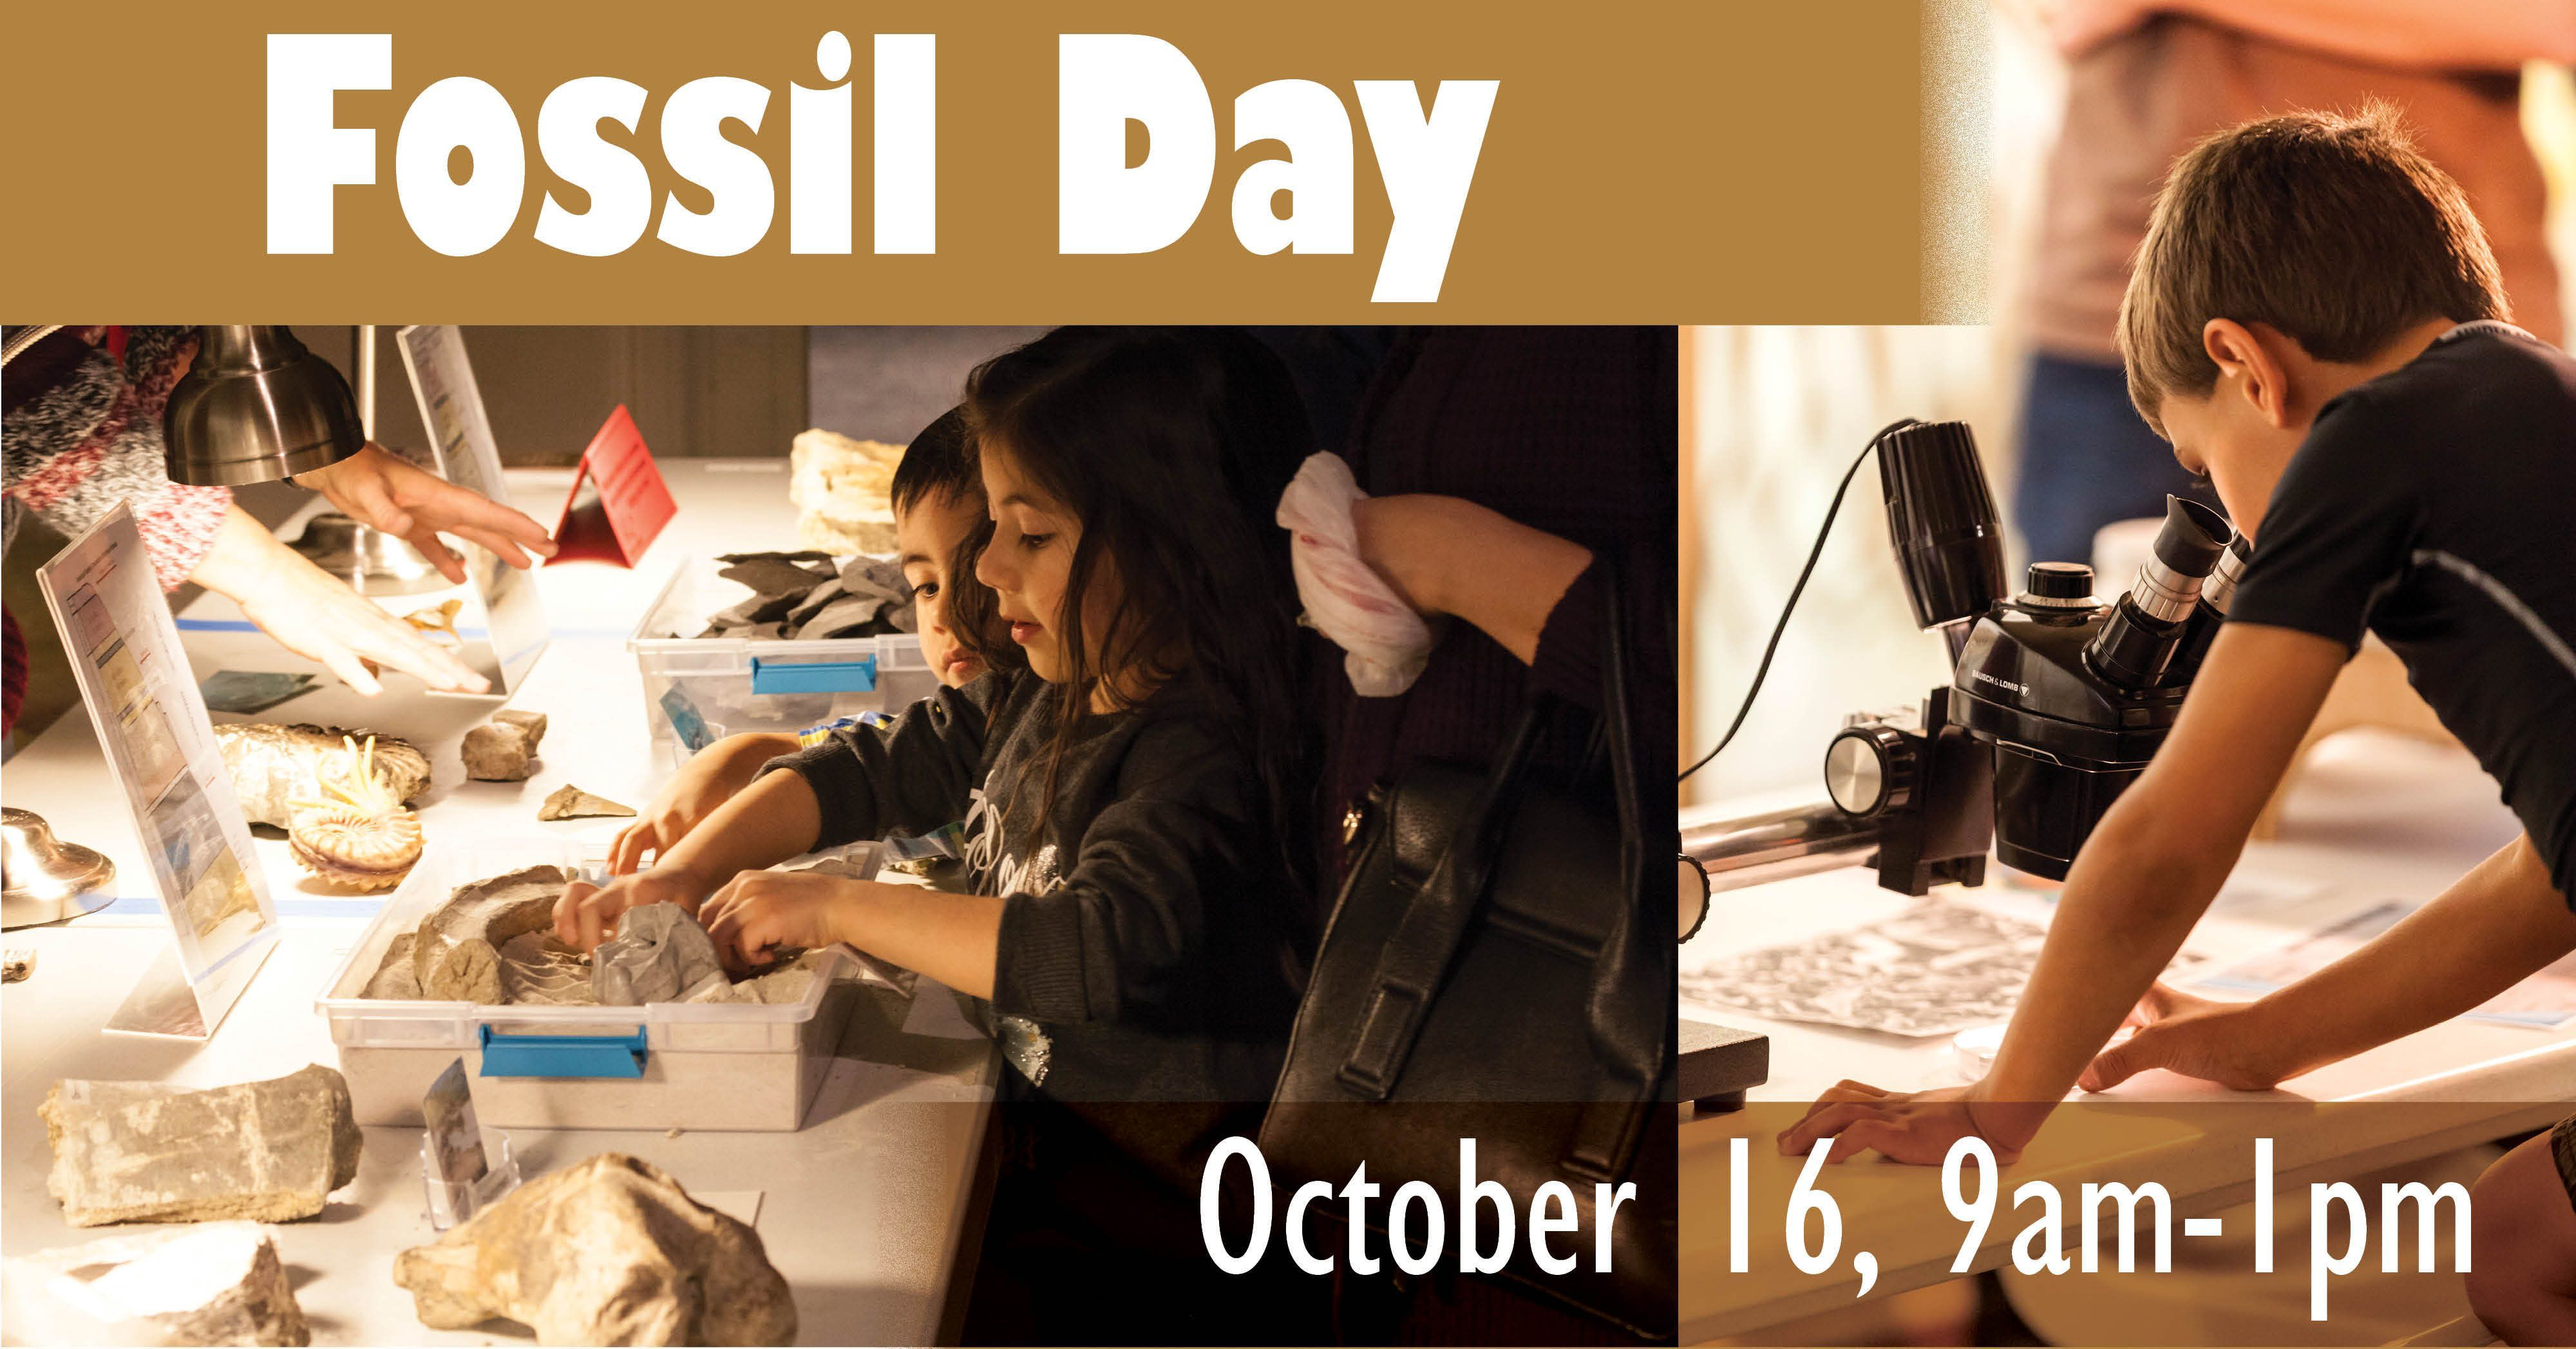 Children explore fossil activities during a Fossil Day event at Morrill Hall museum.